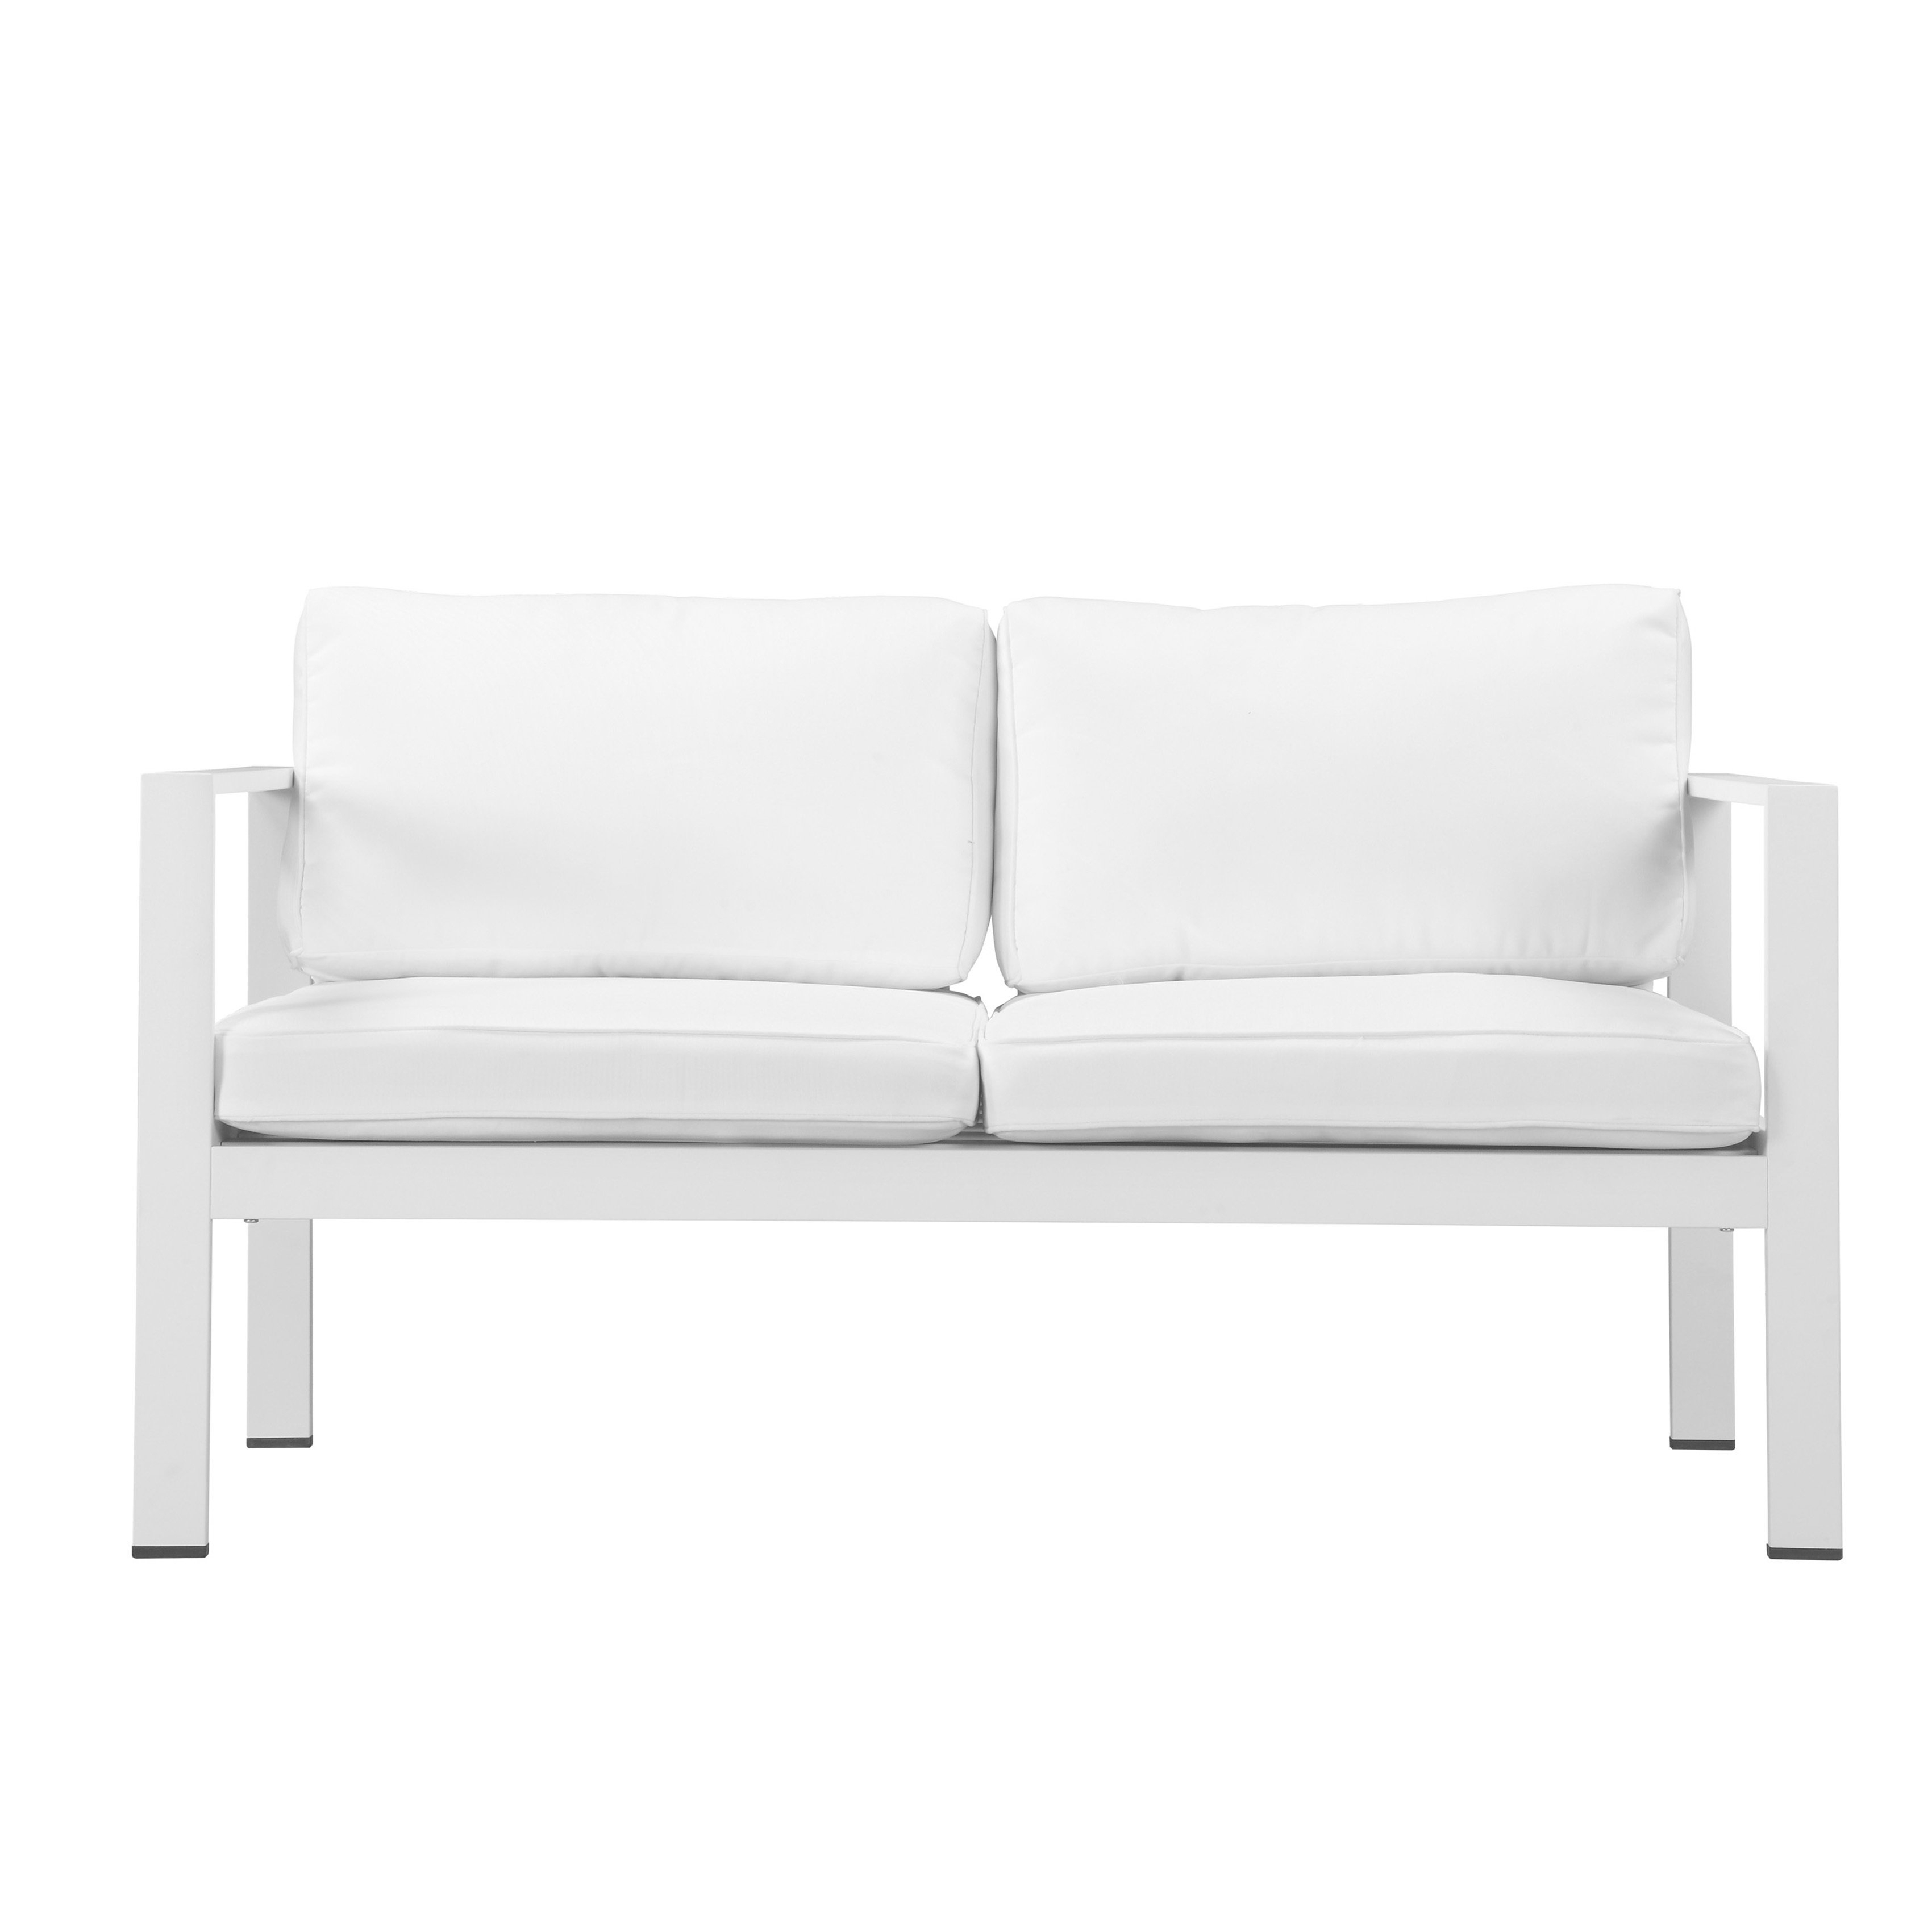 Shop Pangea Home Karen Sofa - On Sale - Free Shipping Today with Karen 3 Piece Sectionals (Image 23 of 30)